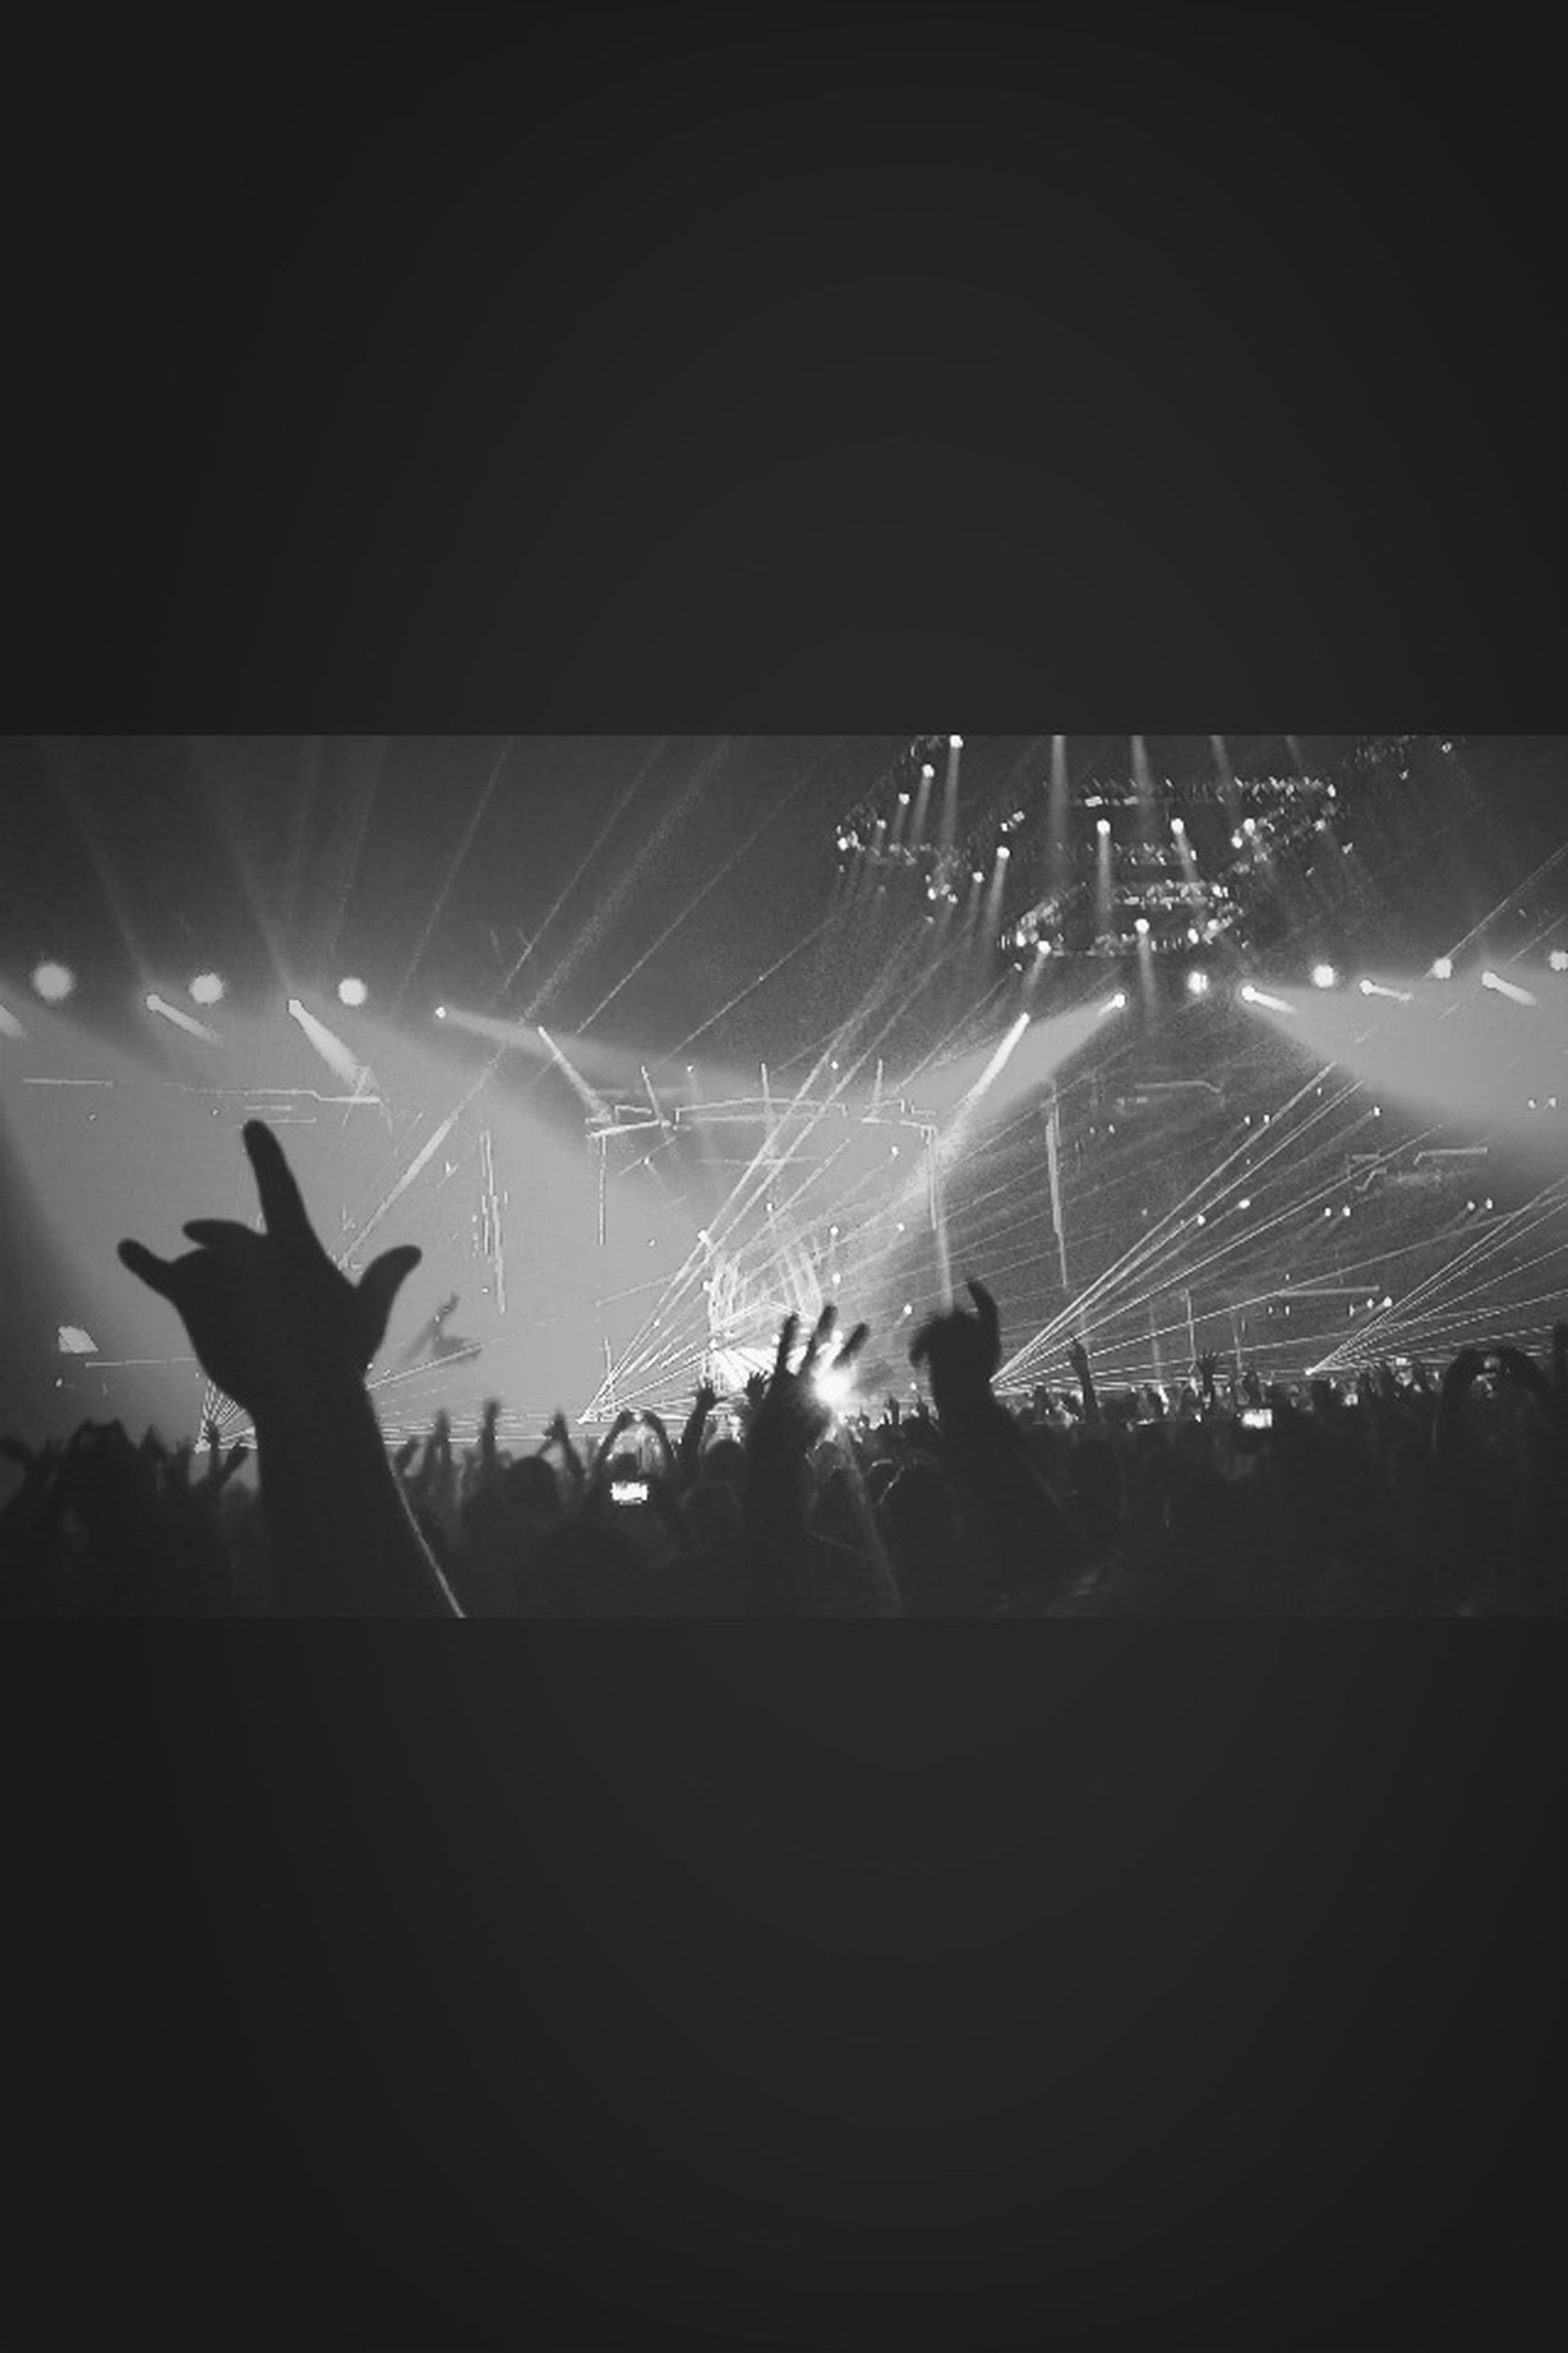 night, illuminated, lifestyles, leisure activity, men, silhouette, arts culture and entertainment, performance, enjoyment, event, unrecognizable person, large group of people, person, togetherness, fun, crowd, celebration, nightlife